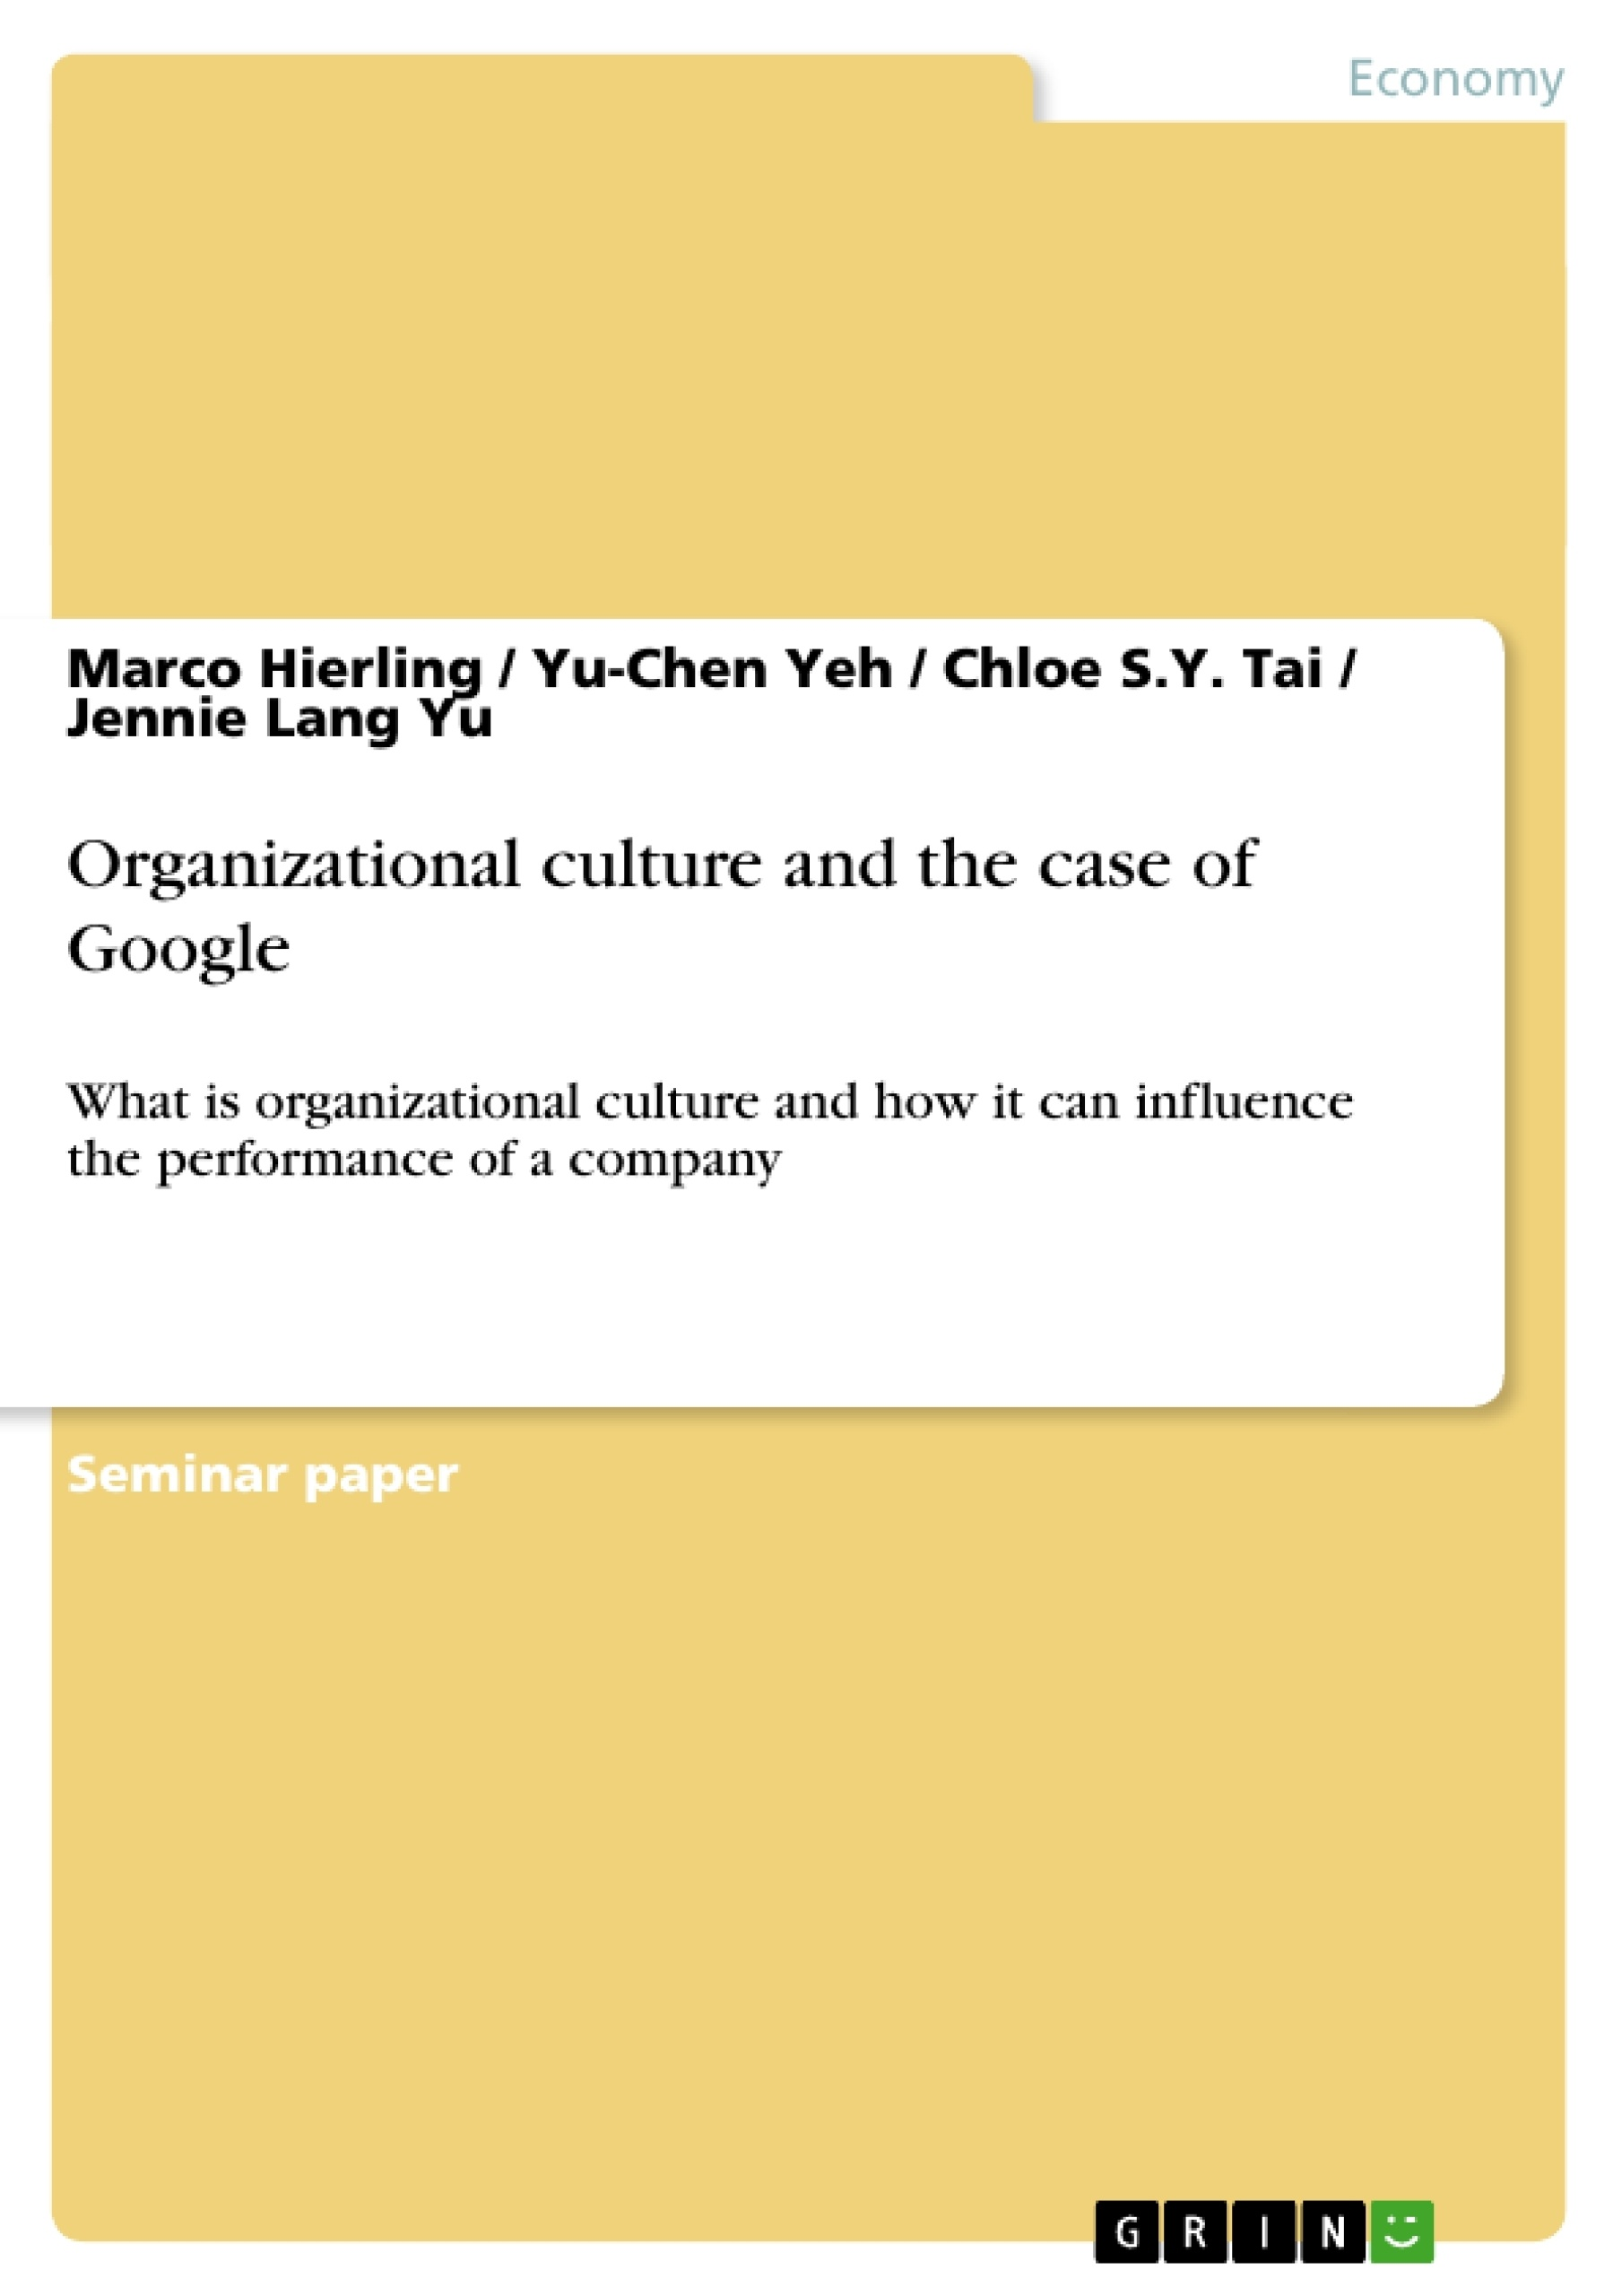 Title: Organizational culture and the case of Google